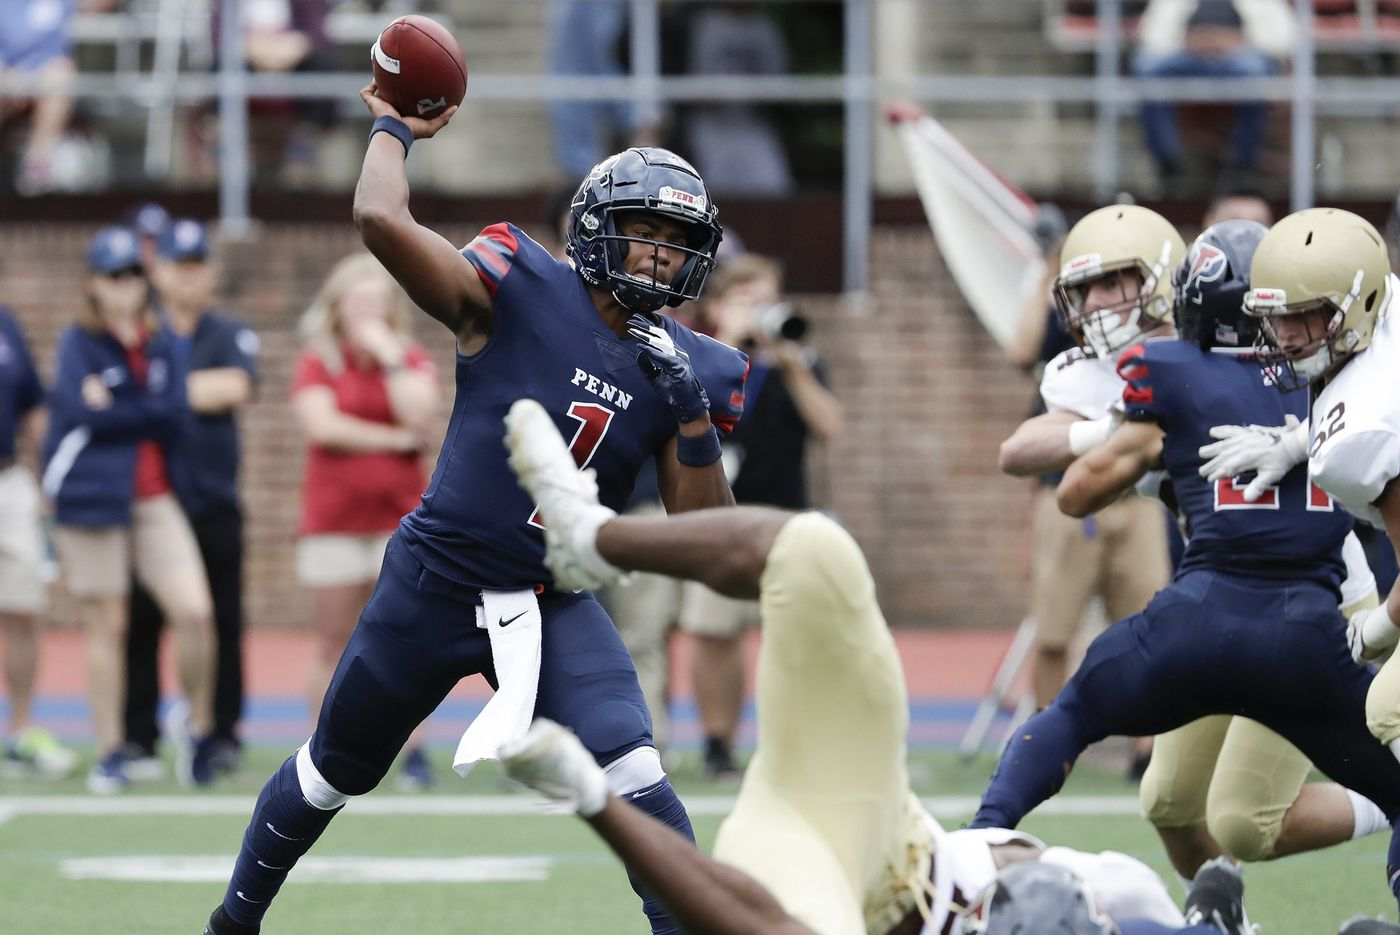 Penn quarterback Ryan Glover has been efficient at avoiding mistakes